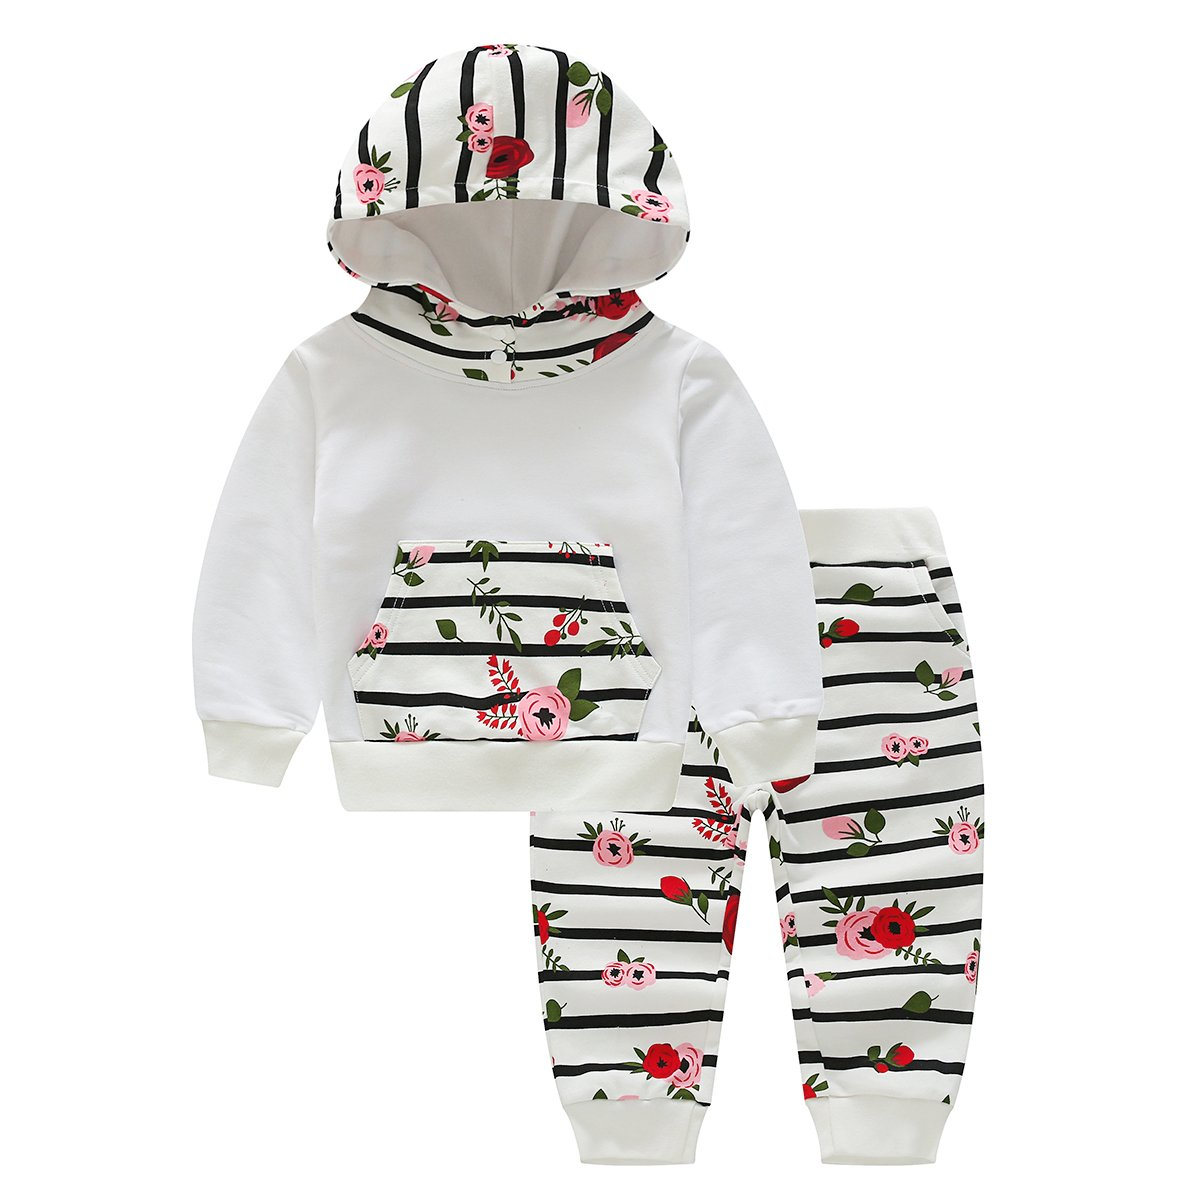 Brightup Baby Hoodies & Tracksuits, Little Girl Outfits,Hoodie Tops and Pants Clothing Set,Print Sweatshirt